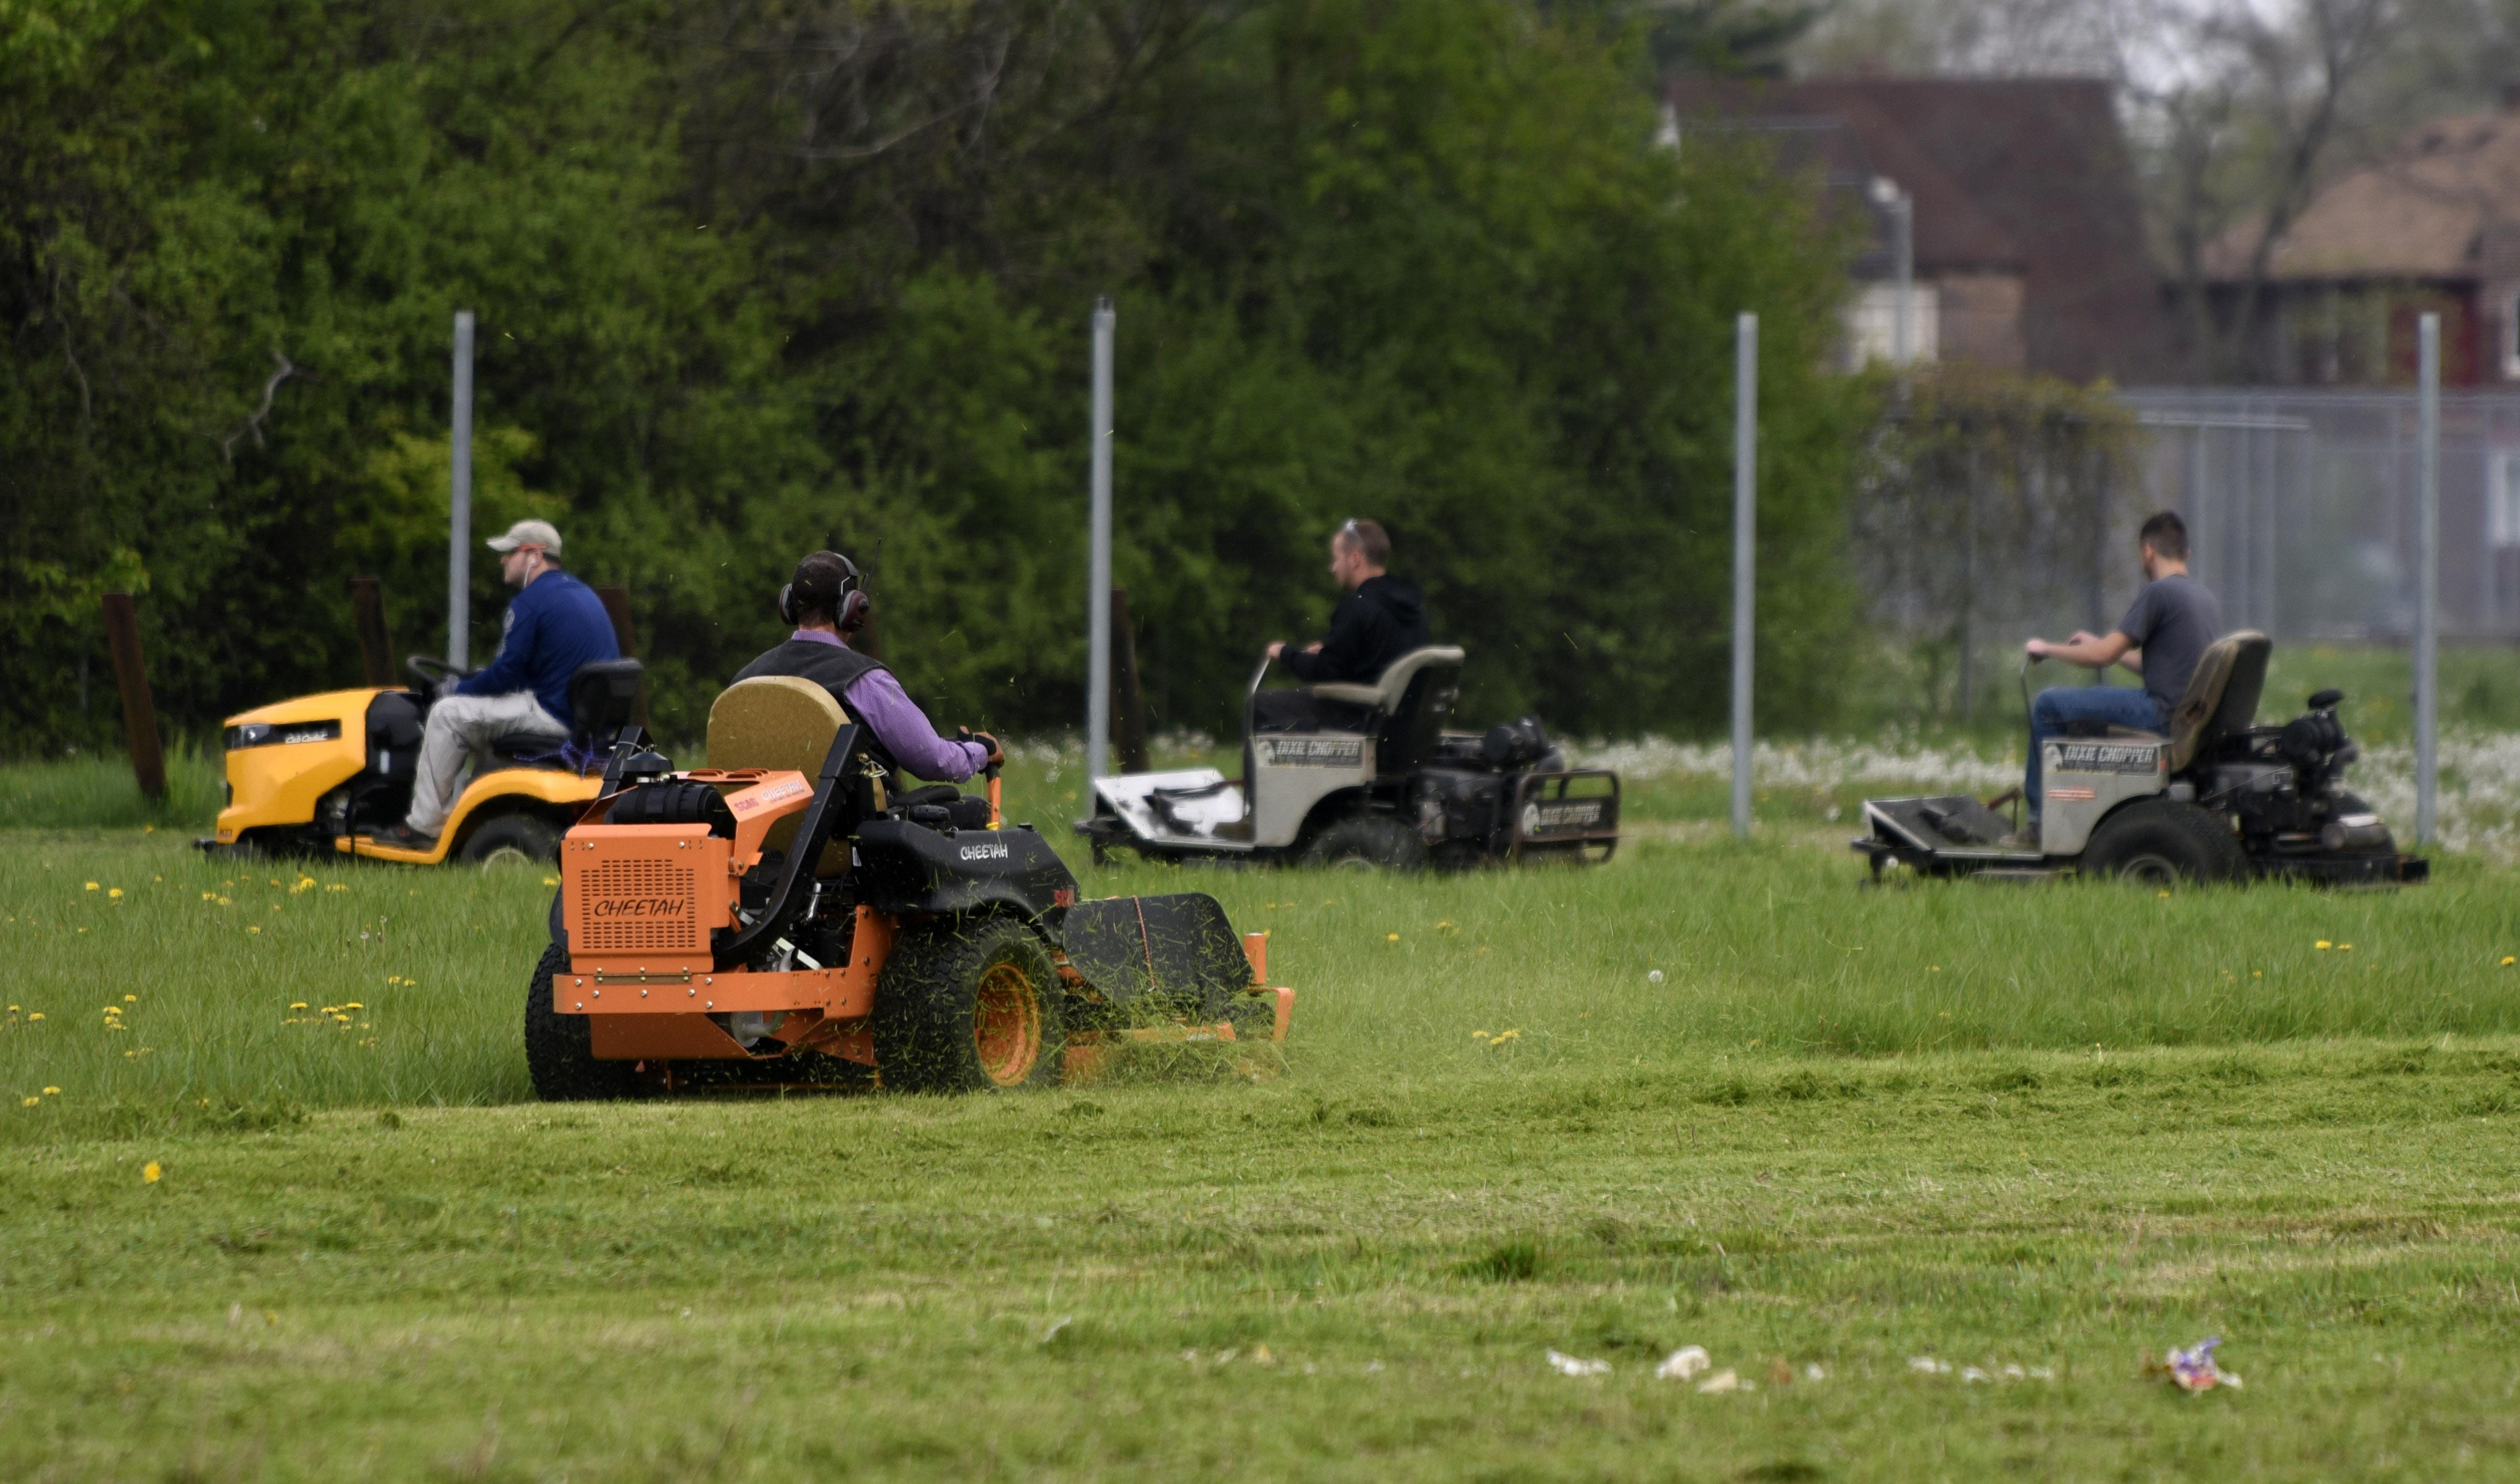 The Best Time to Mow your Lawn